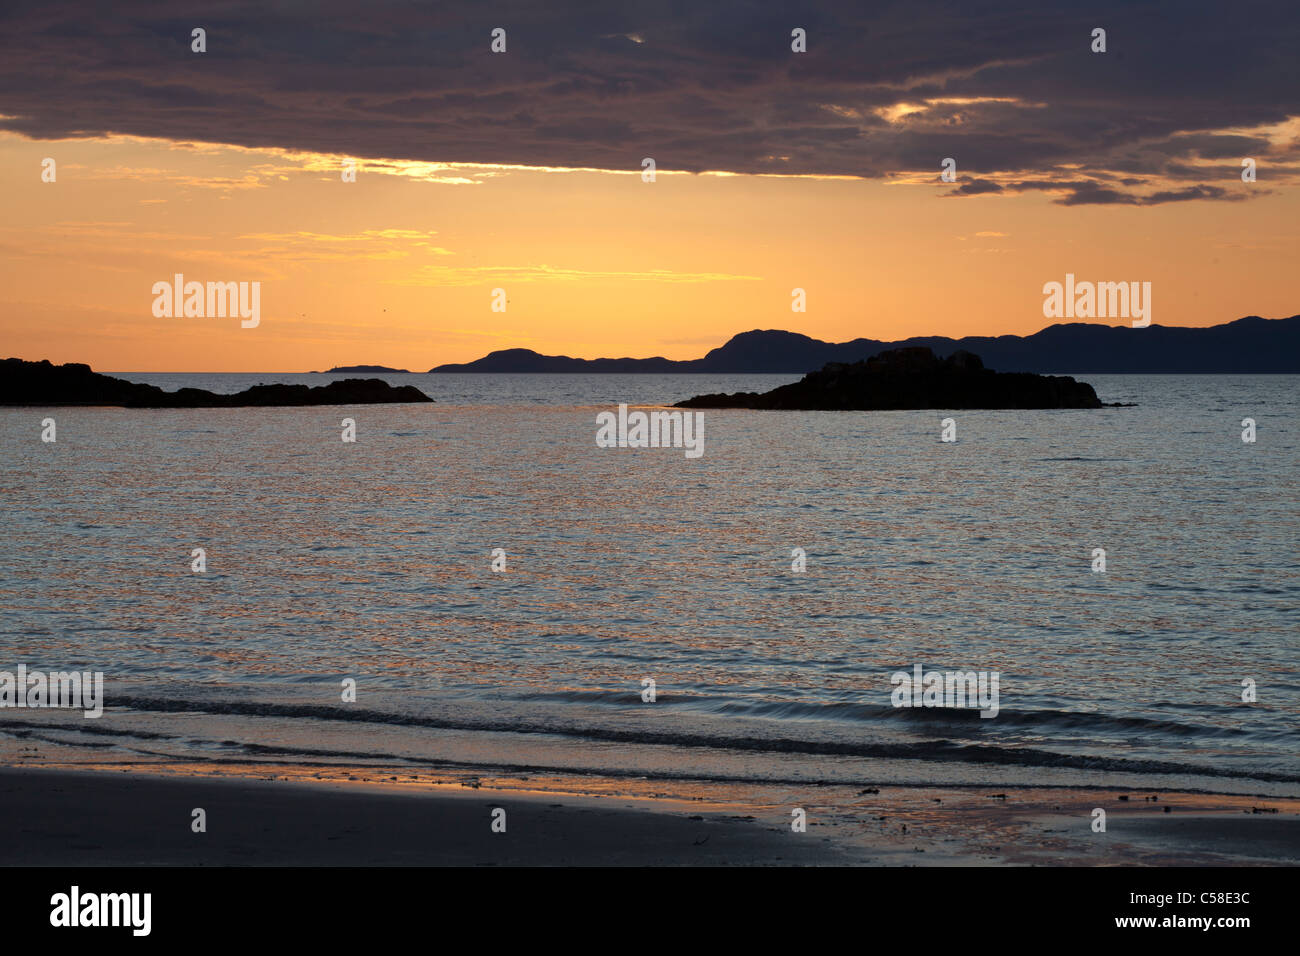 Sunset over the Scottish Isles as seen from Camusdarach in the Western Highlands, - Stock Image